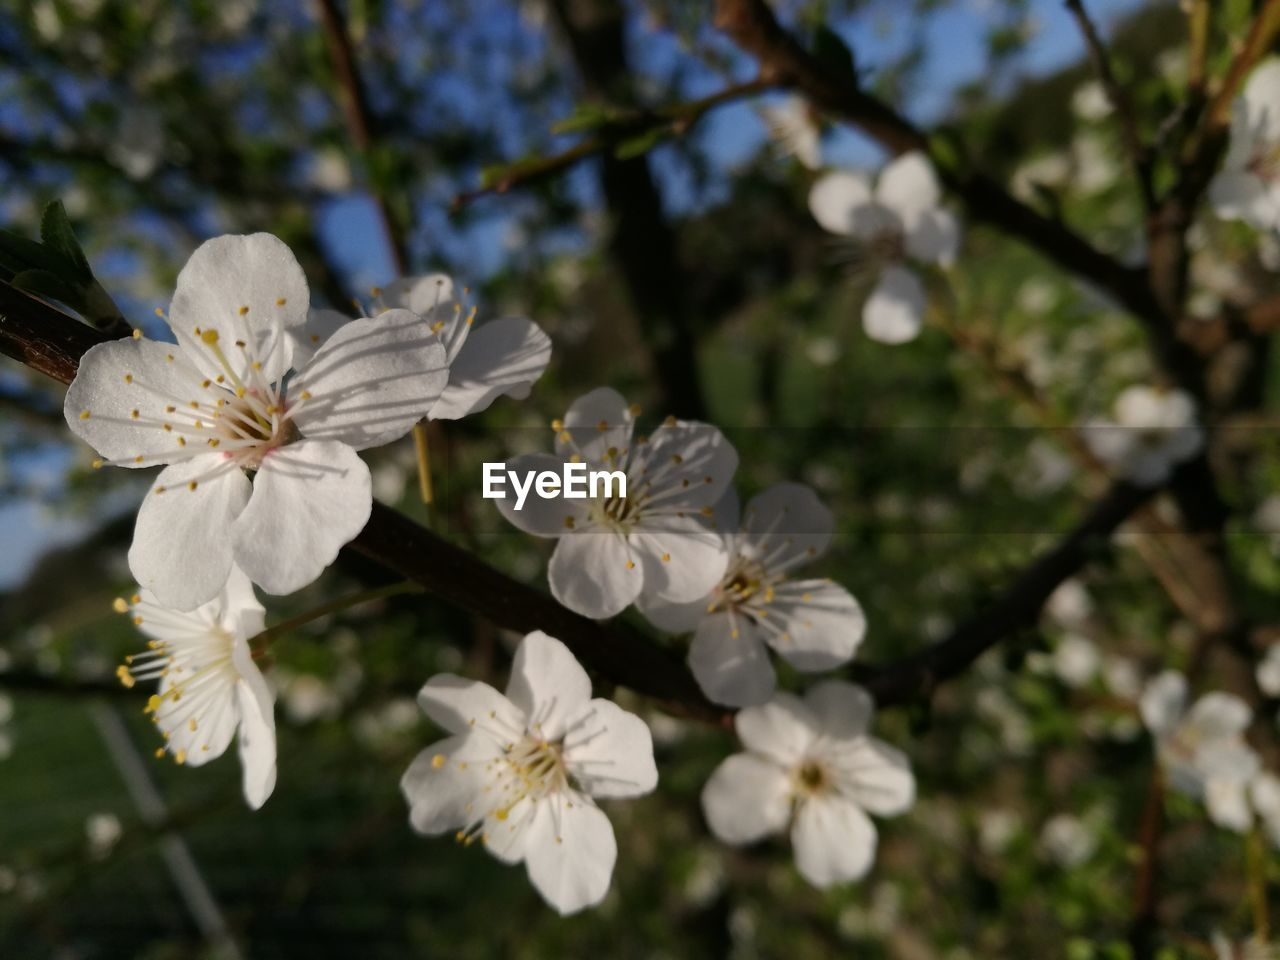 flowering plant, plant, flower, fragility, growth, freshness, vulnerability, beauty in nature, white color, petal, tree, blossom, flower head, inflorescence, close-up, nature, springtime, branch, pollen, no people, outdoors, cherry blossom, cherry tree, spring